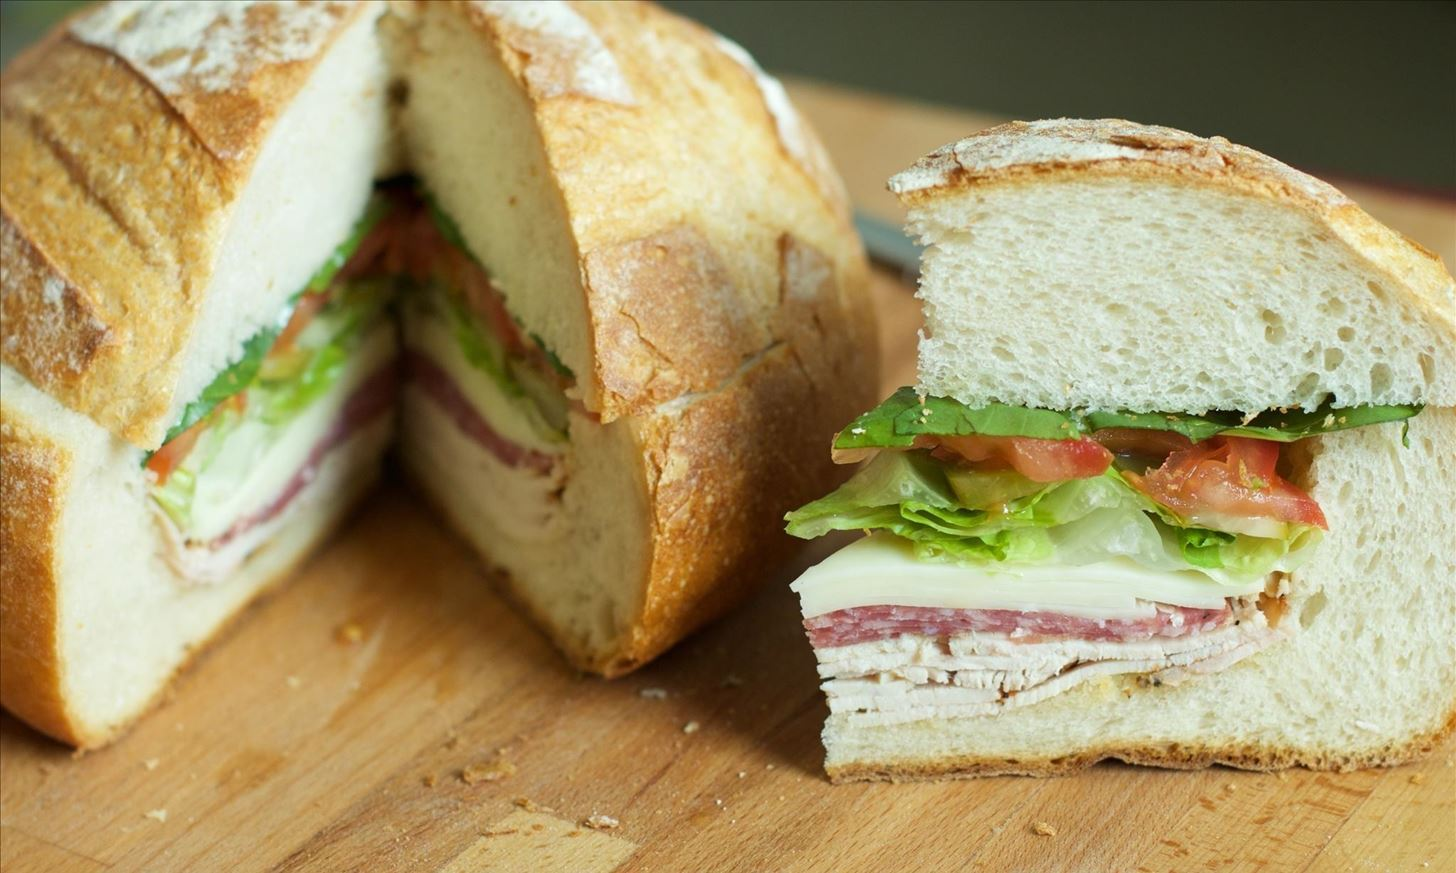 Transform a Loaf of Bread into a Stuffed Sandwich Fit for a Picnic